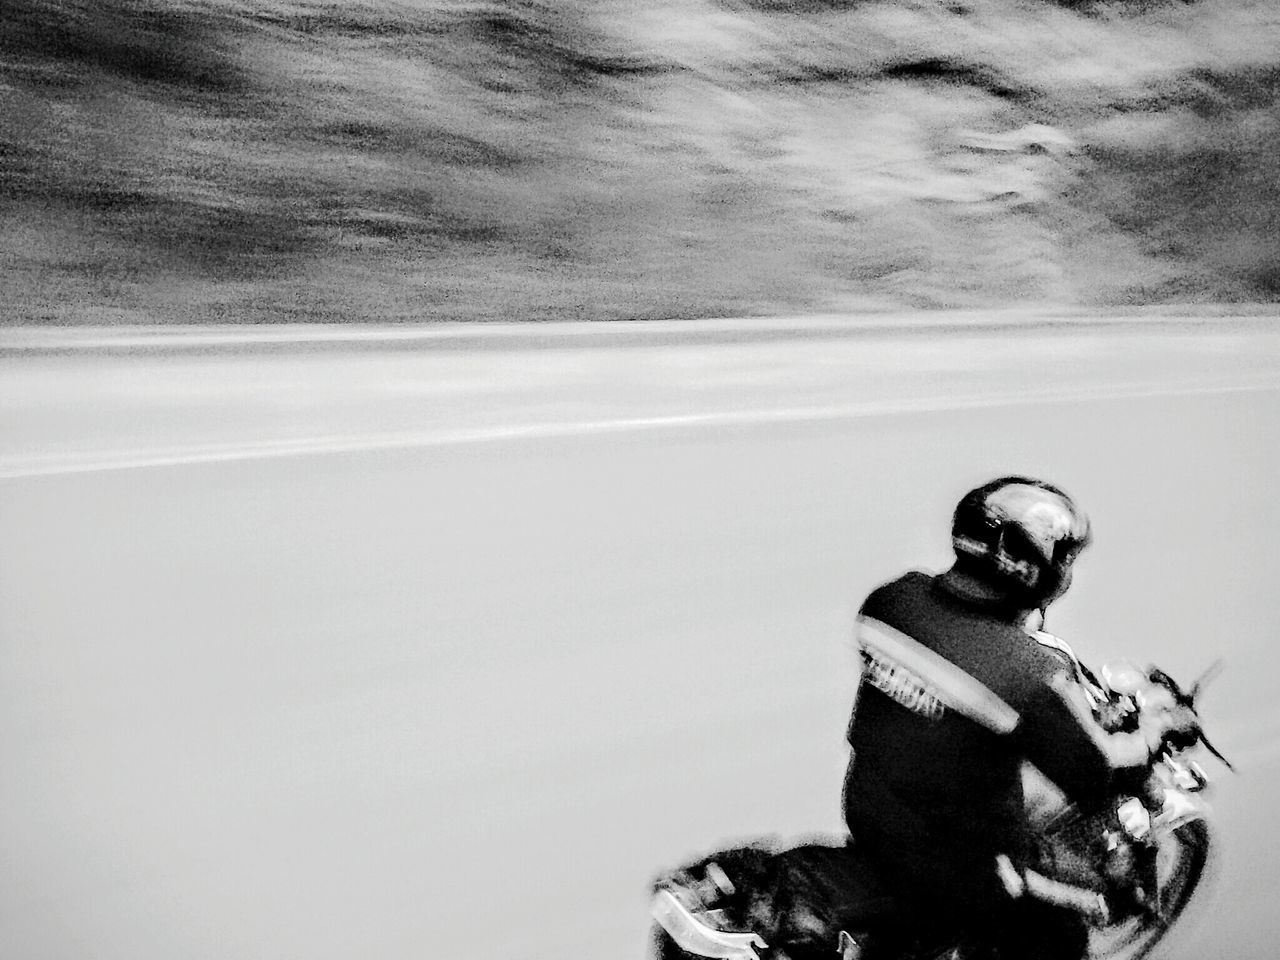 The Journey Is The Destination Fast On The Way Street Bnw Black And White Eye4photography  Capture The Moment Travel Photography Transport Fast Shot Fast Moving Motorcycle EyeEm Best Pics Blackandwhite Photography Speed Moving Imperfection